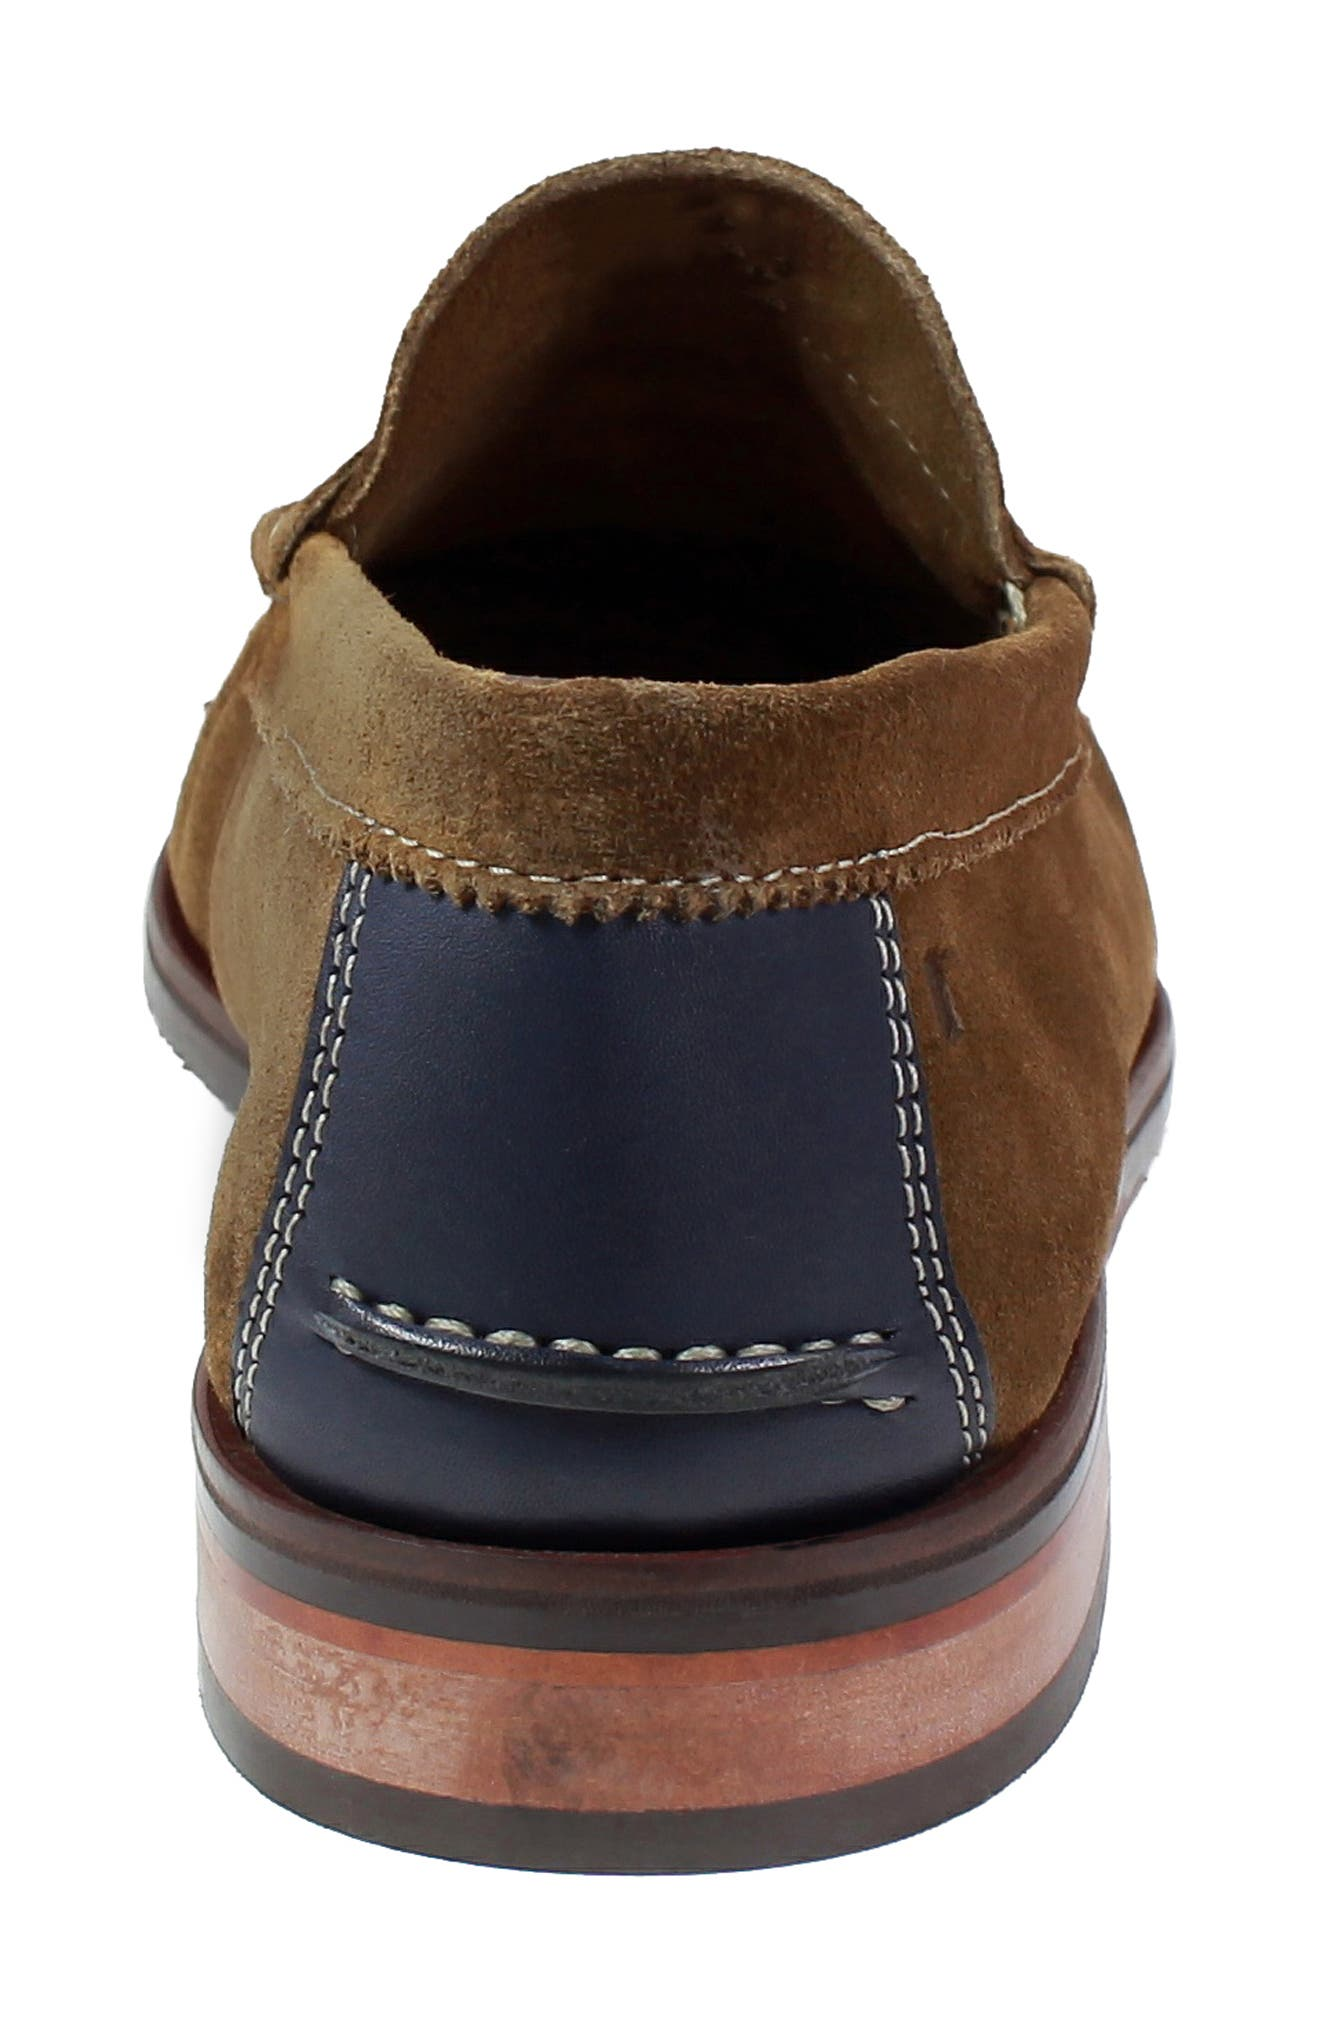 Heads-Up Penny Loafer,                             Alternate thumbnail 7, color,                             SNUFF SUEDE